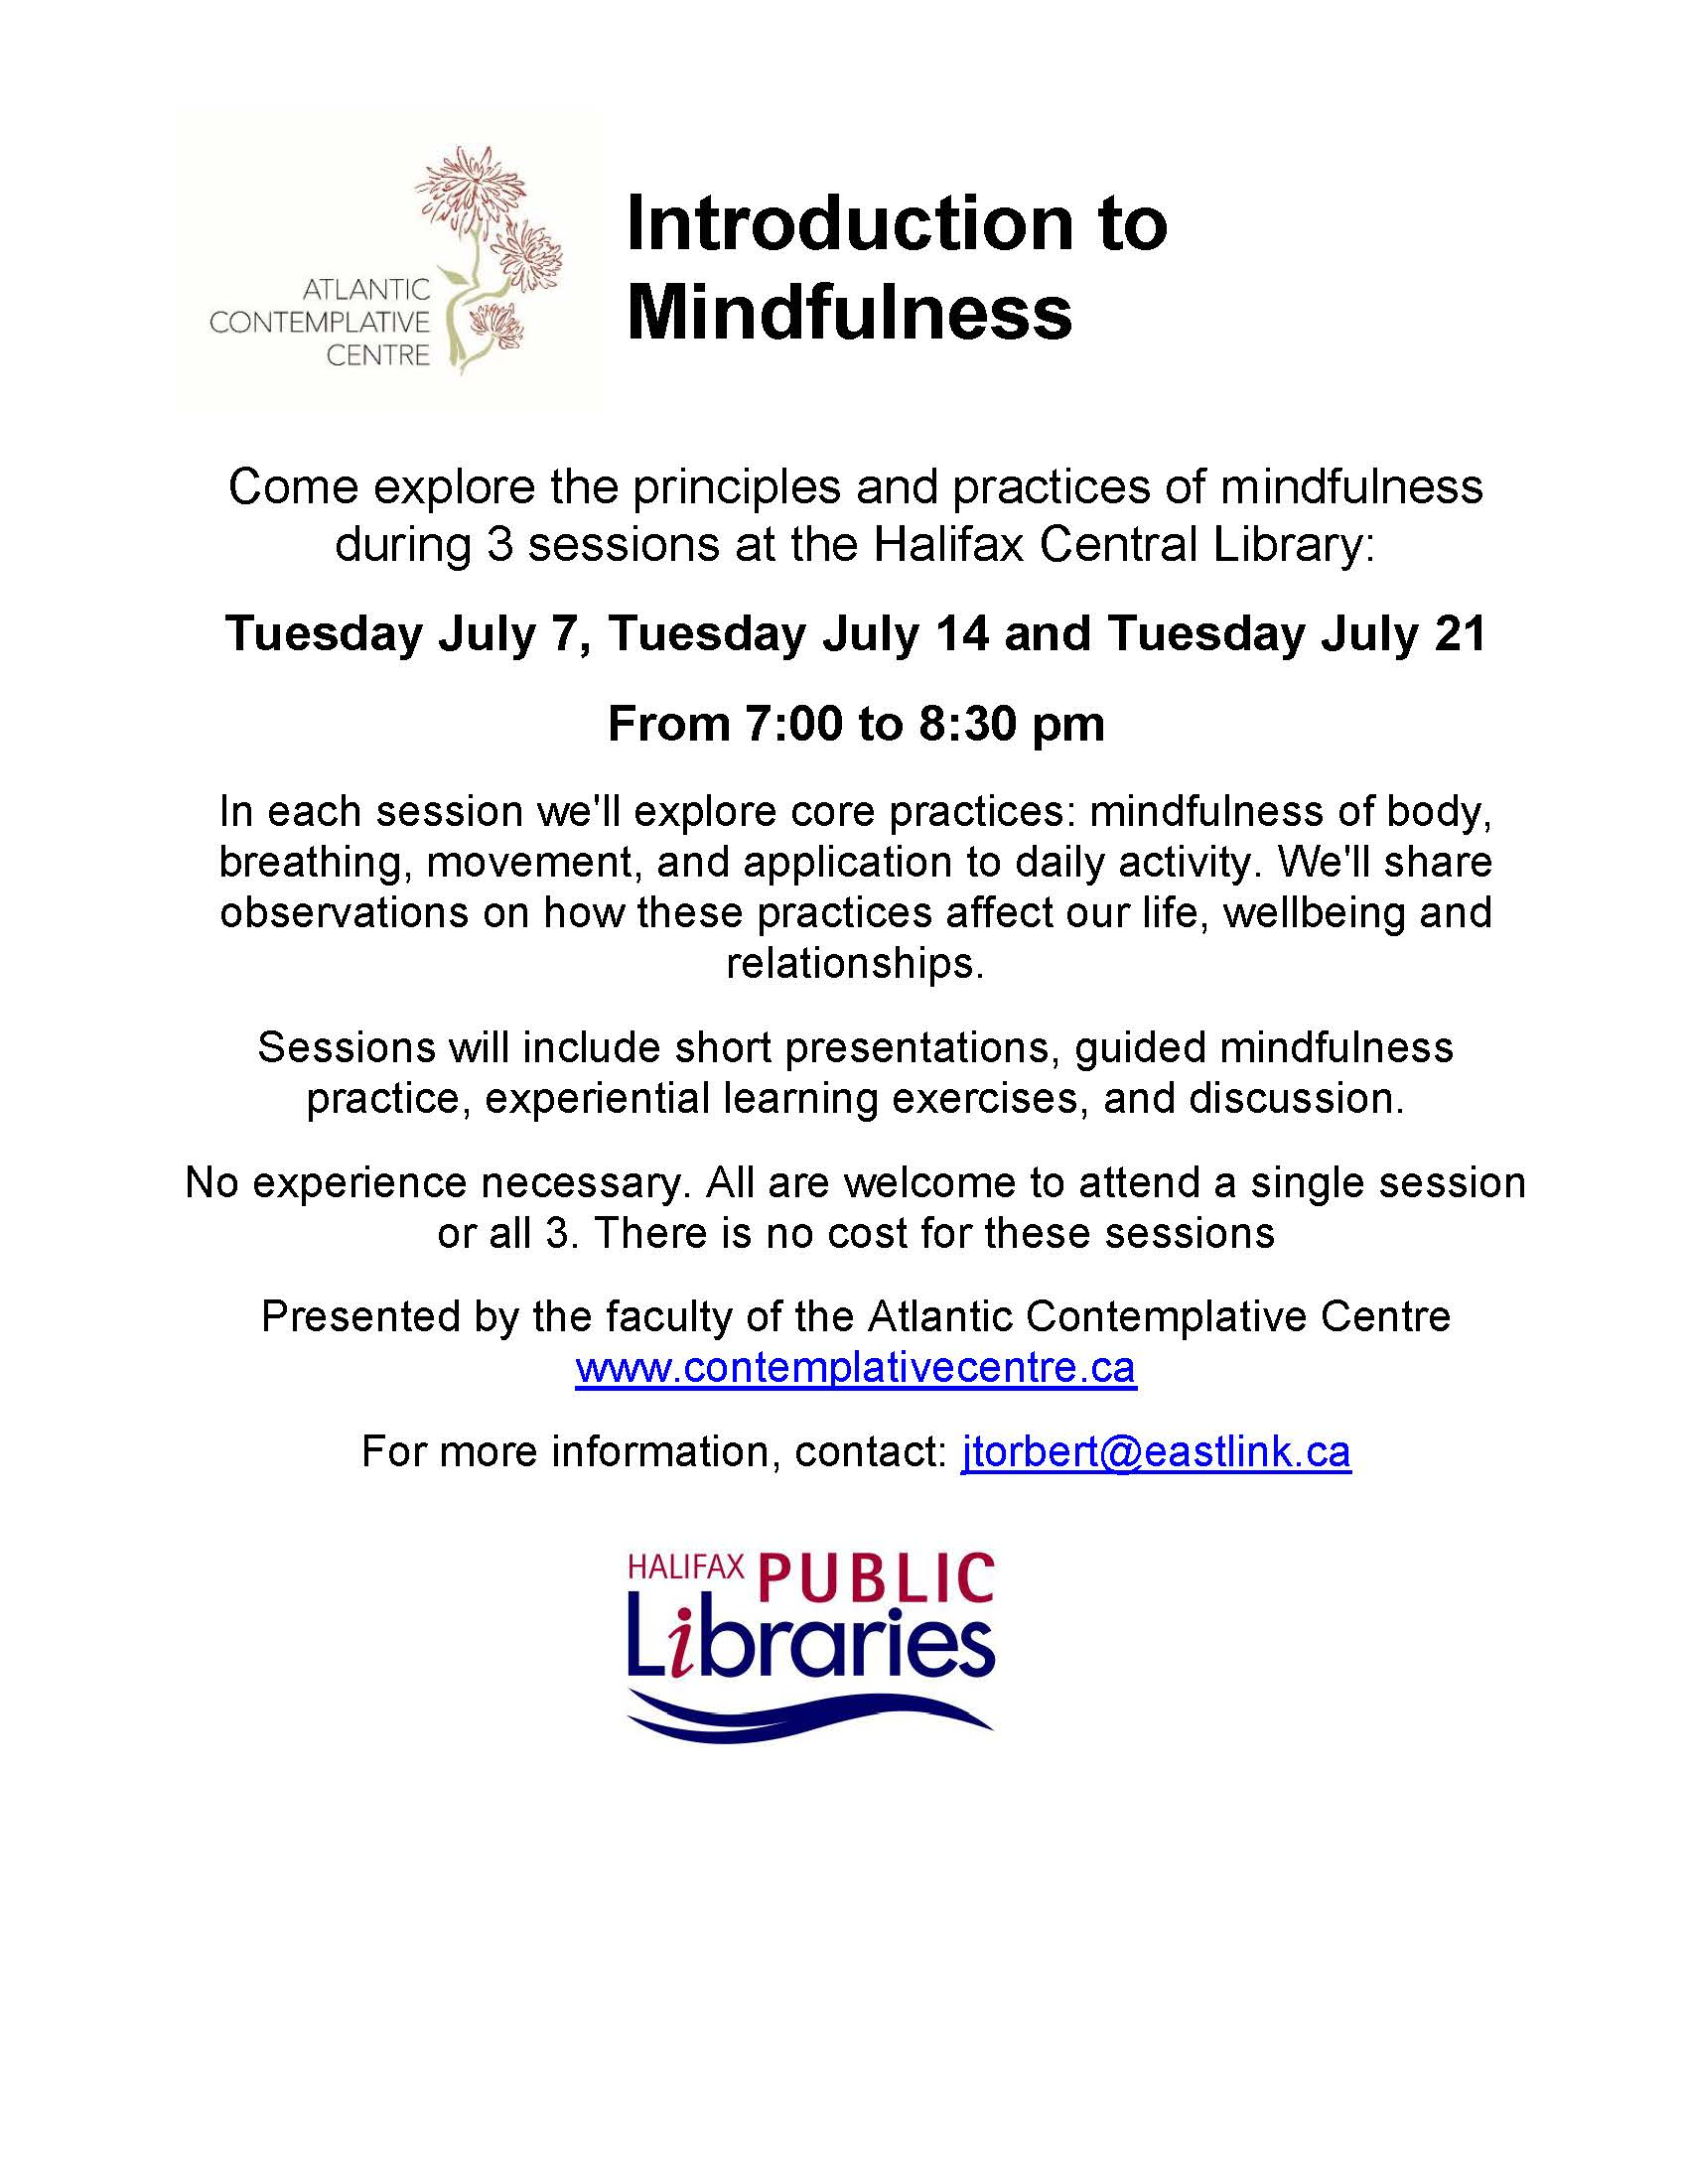 Library July Mindfulness Series Poster